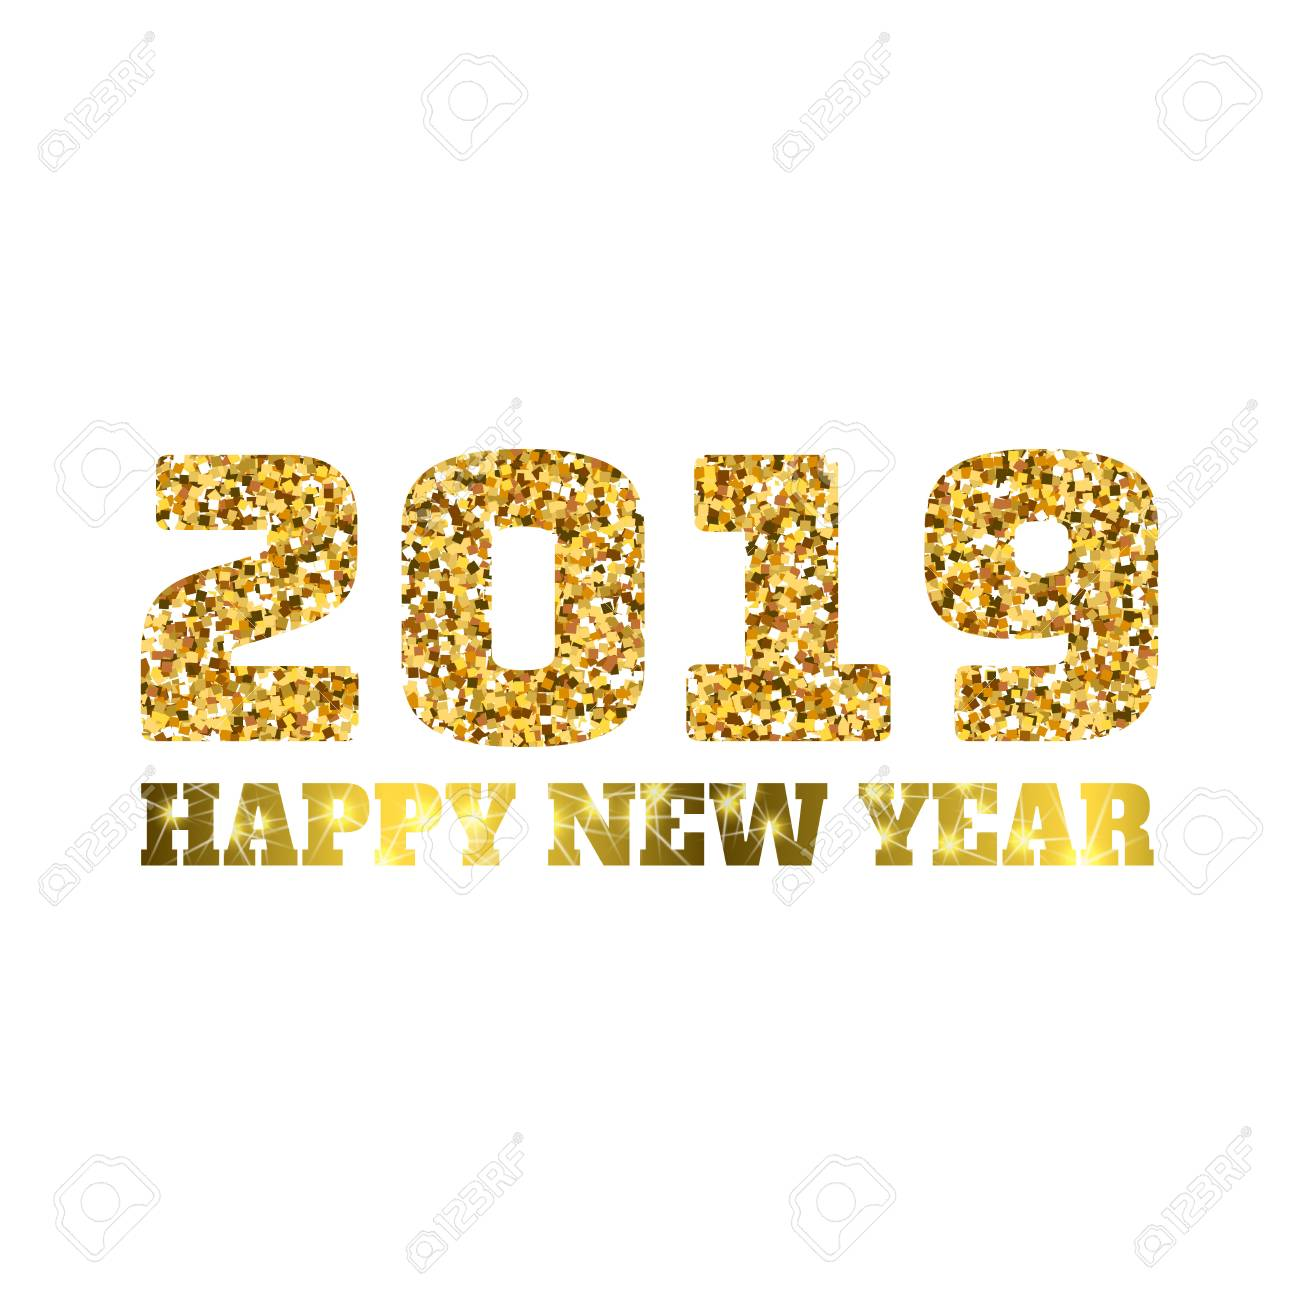 Happy new 2019 year. Gold glitter particles. Shine gloss brilliance sparkles sign. Holidays vector design element for calendar, party invitation, card, poster, banner, web. - 93150410